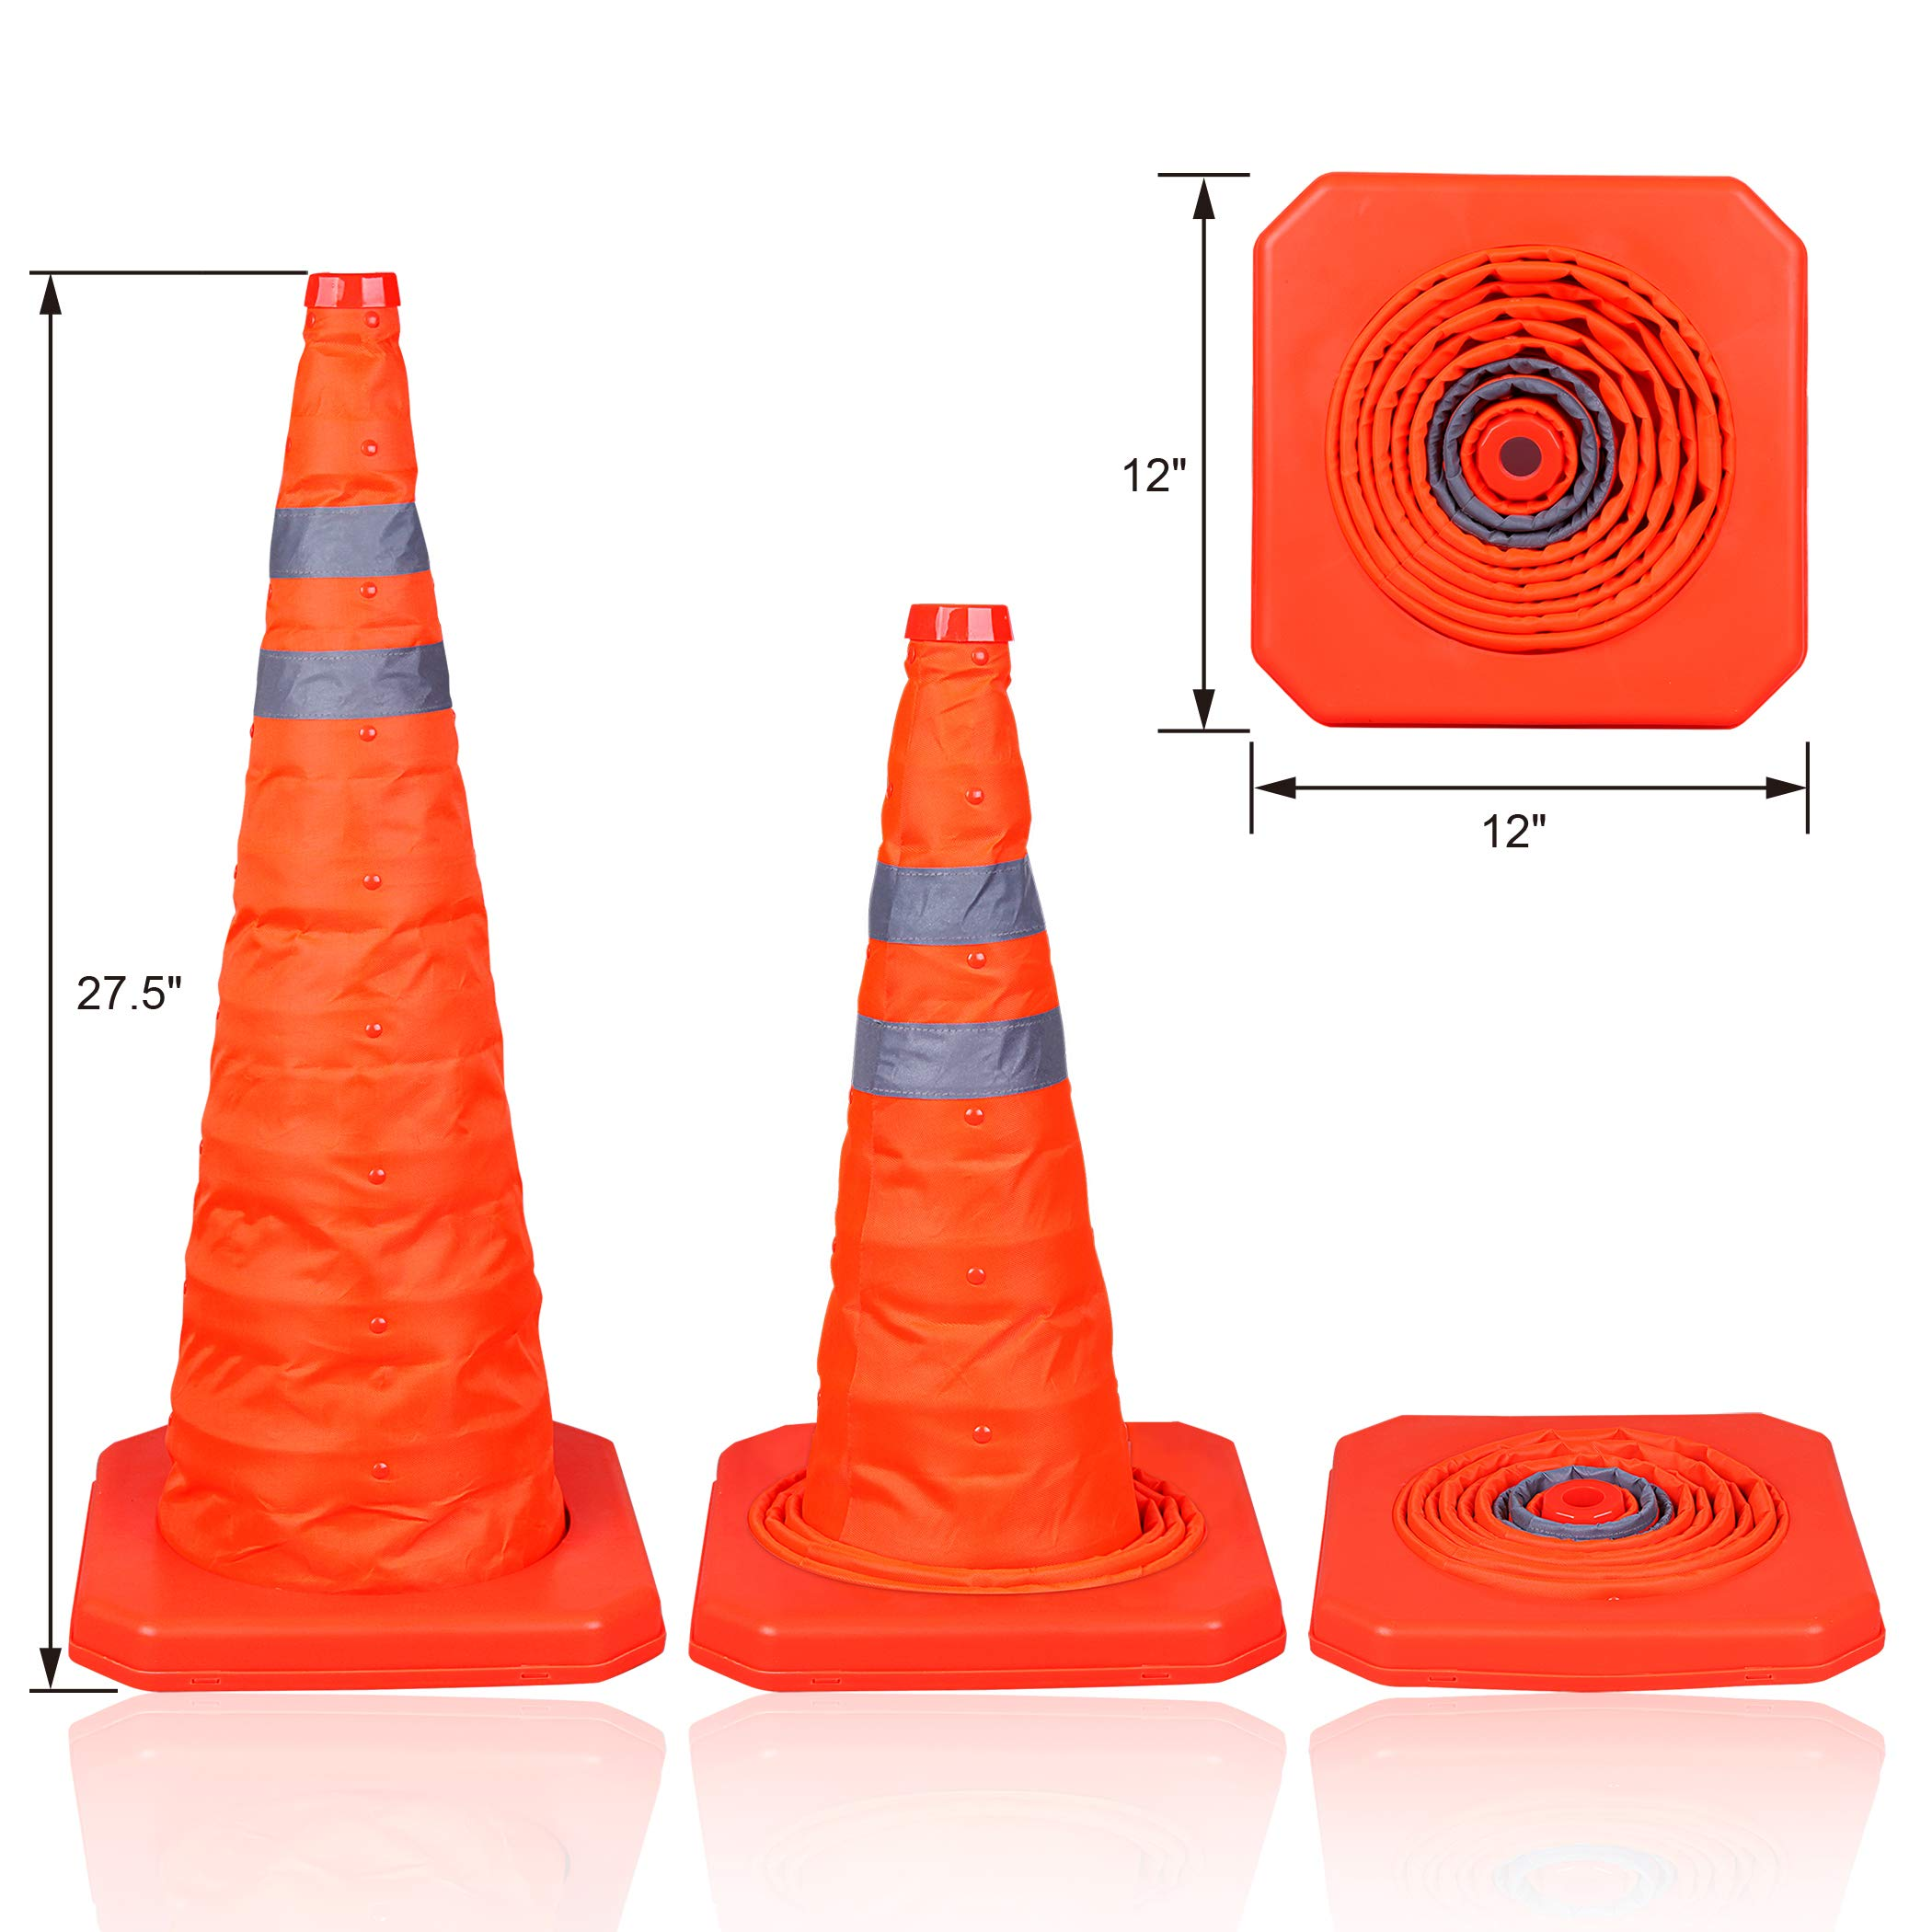 CARTMAN 27.5 inch Collapsible Traffic Cones with LED Light Multi Purpose Pop up Reflective Safety Cone 4PK by CARTMAN (Image #2)